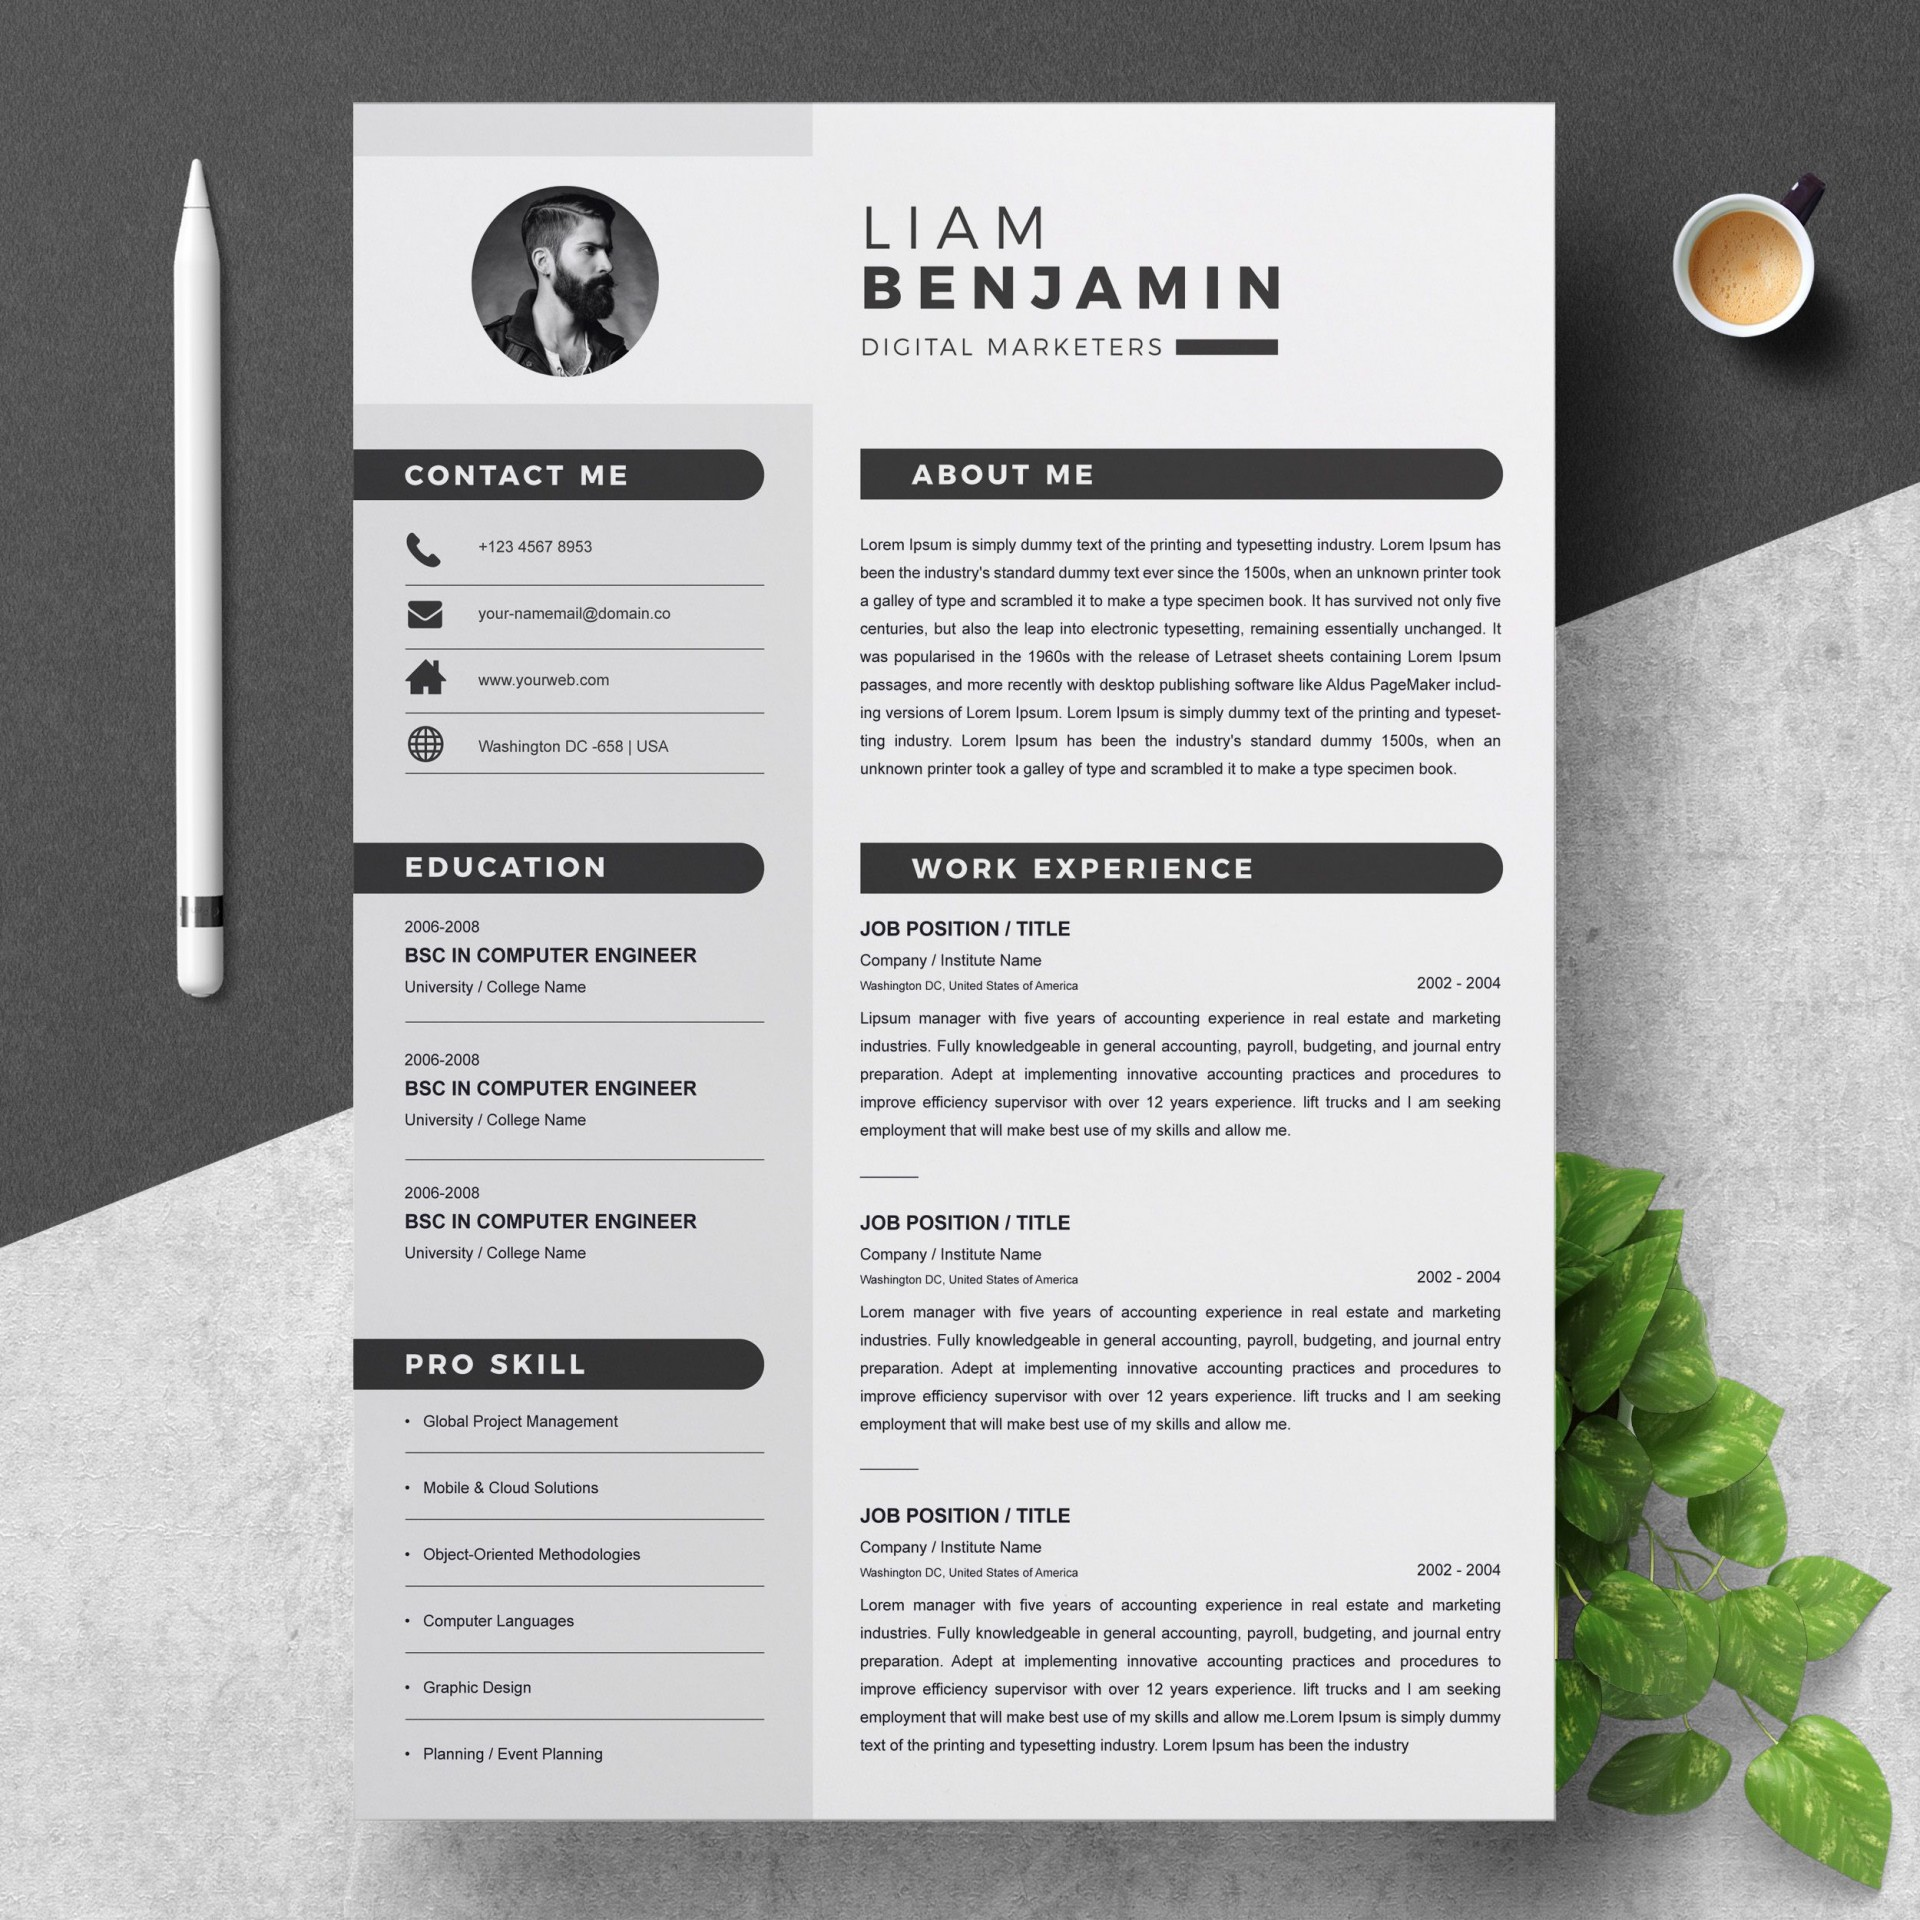 000 Phenomenal Download Template For Word Concept  Wordpres Free Resume 2007 Addres Label1920